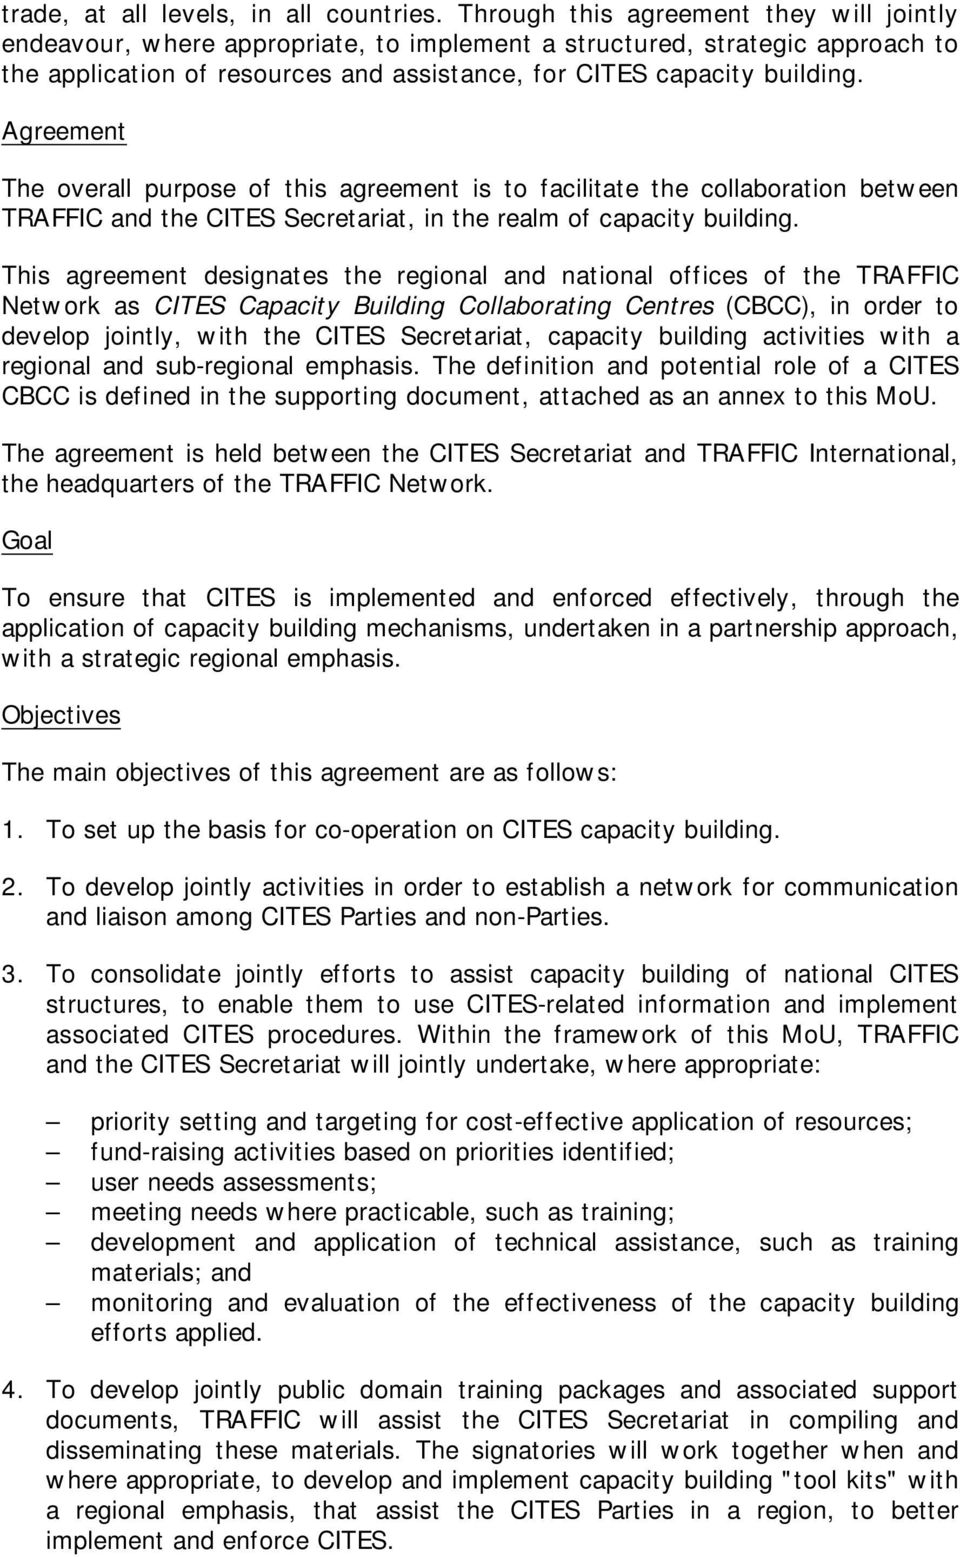 Agreement The overall purpose of this agreement is to facilitate the collaboration between TRAFFIC and the CITES Secretariat, in the realm of capacity building.